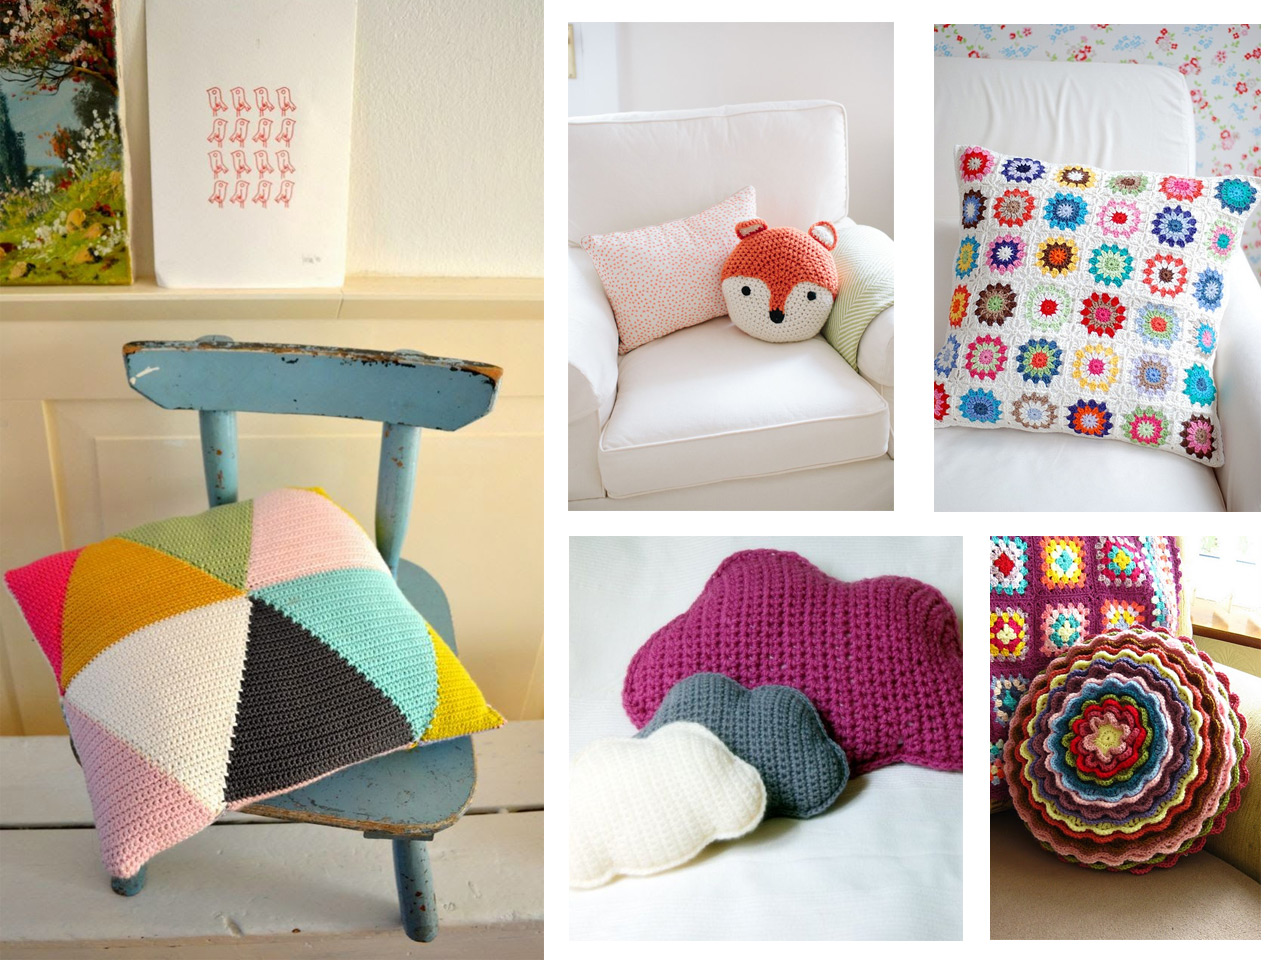 10 propuestas para decorar tu casa con crochet for Ver ideas para decorar una casa